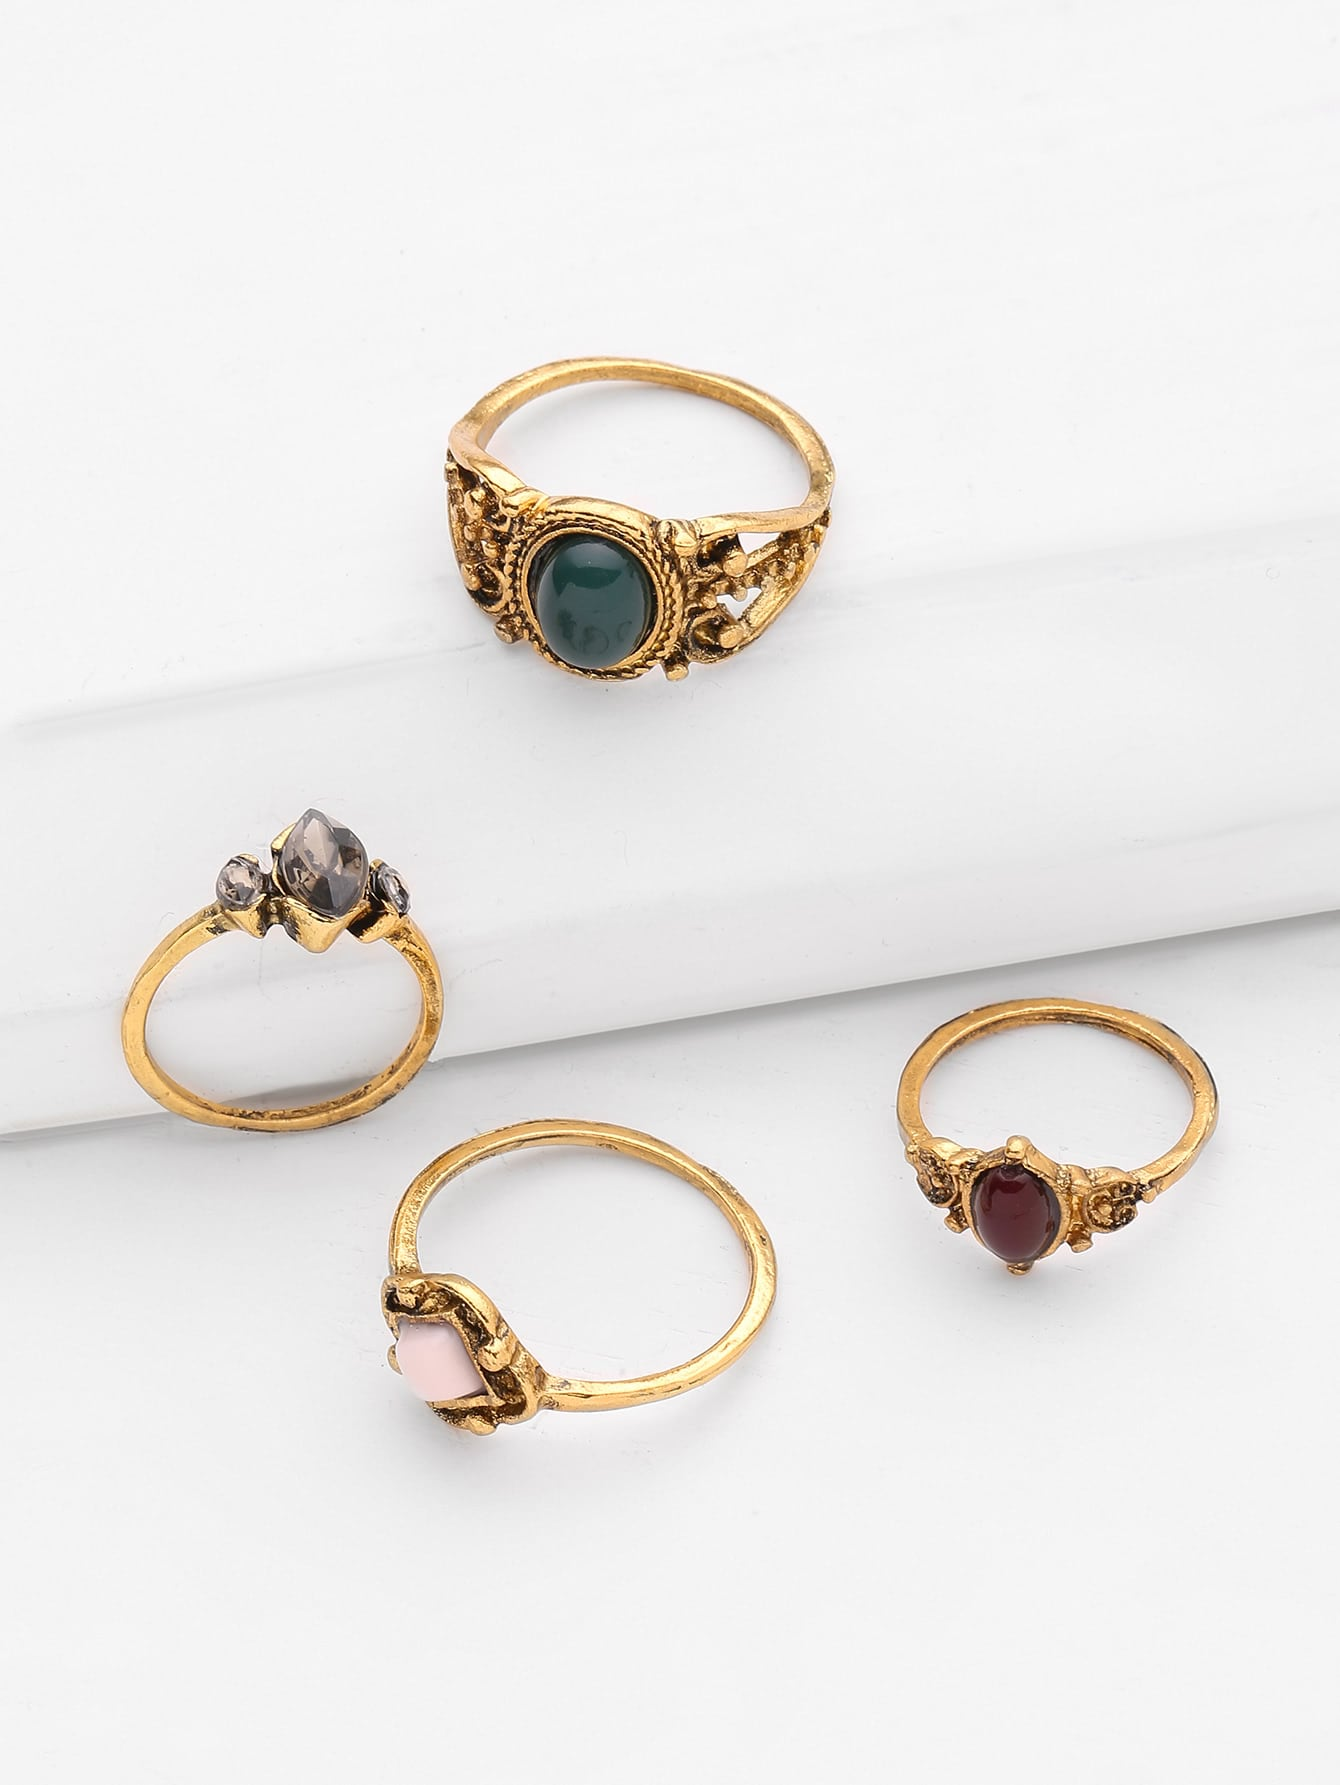 Gemstone Design Retro Ring Set 4pcs 10pcs antique gold gemstone ring set